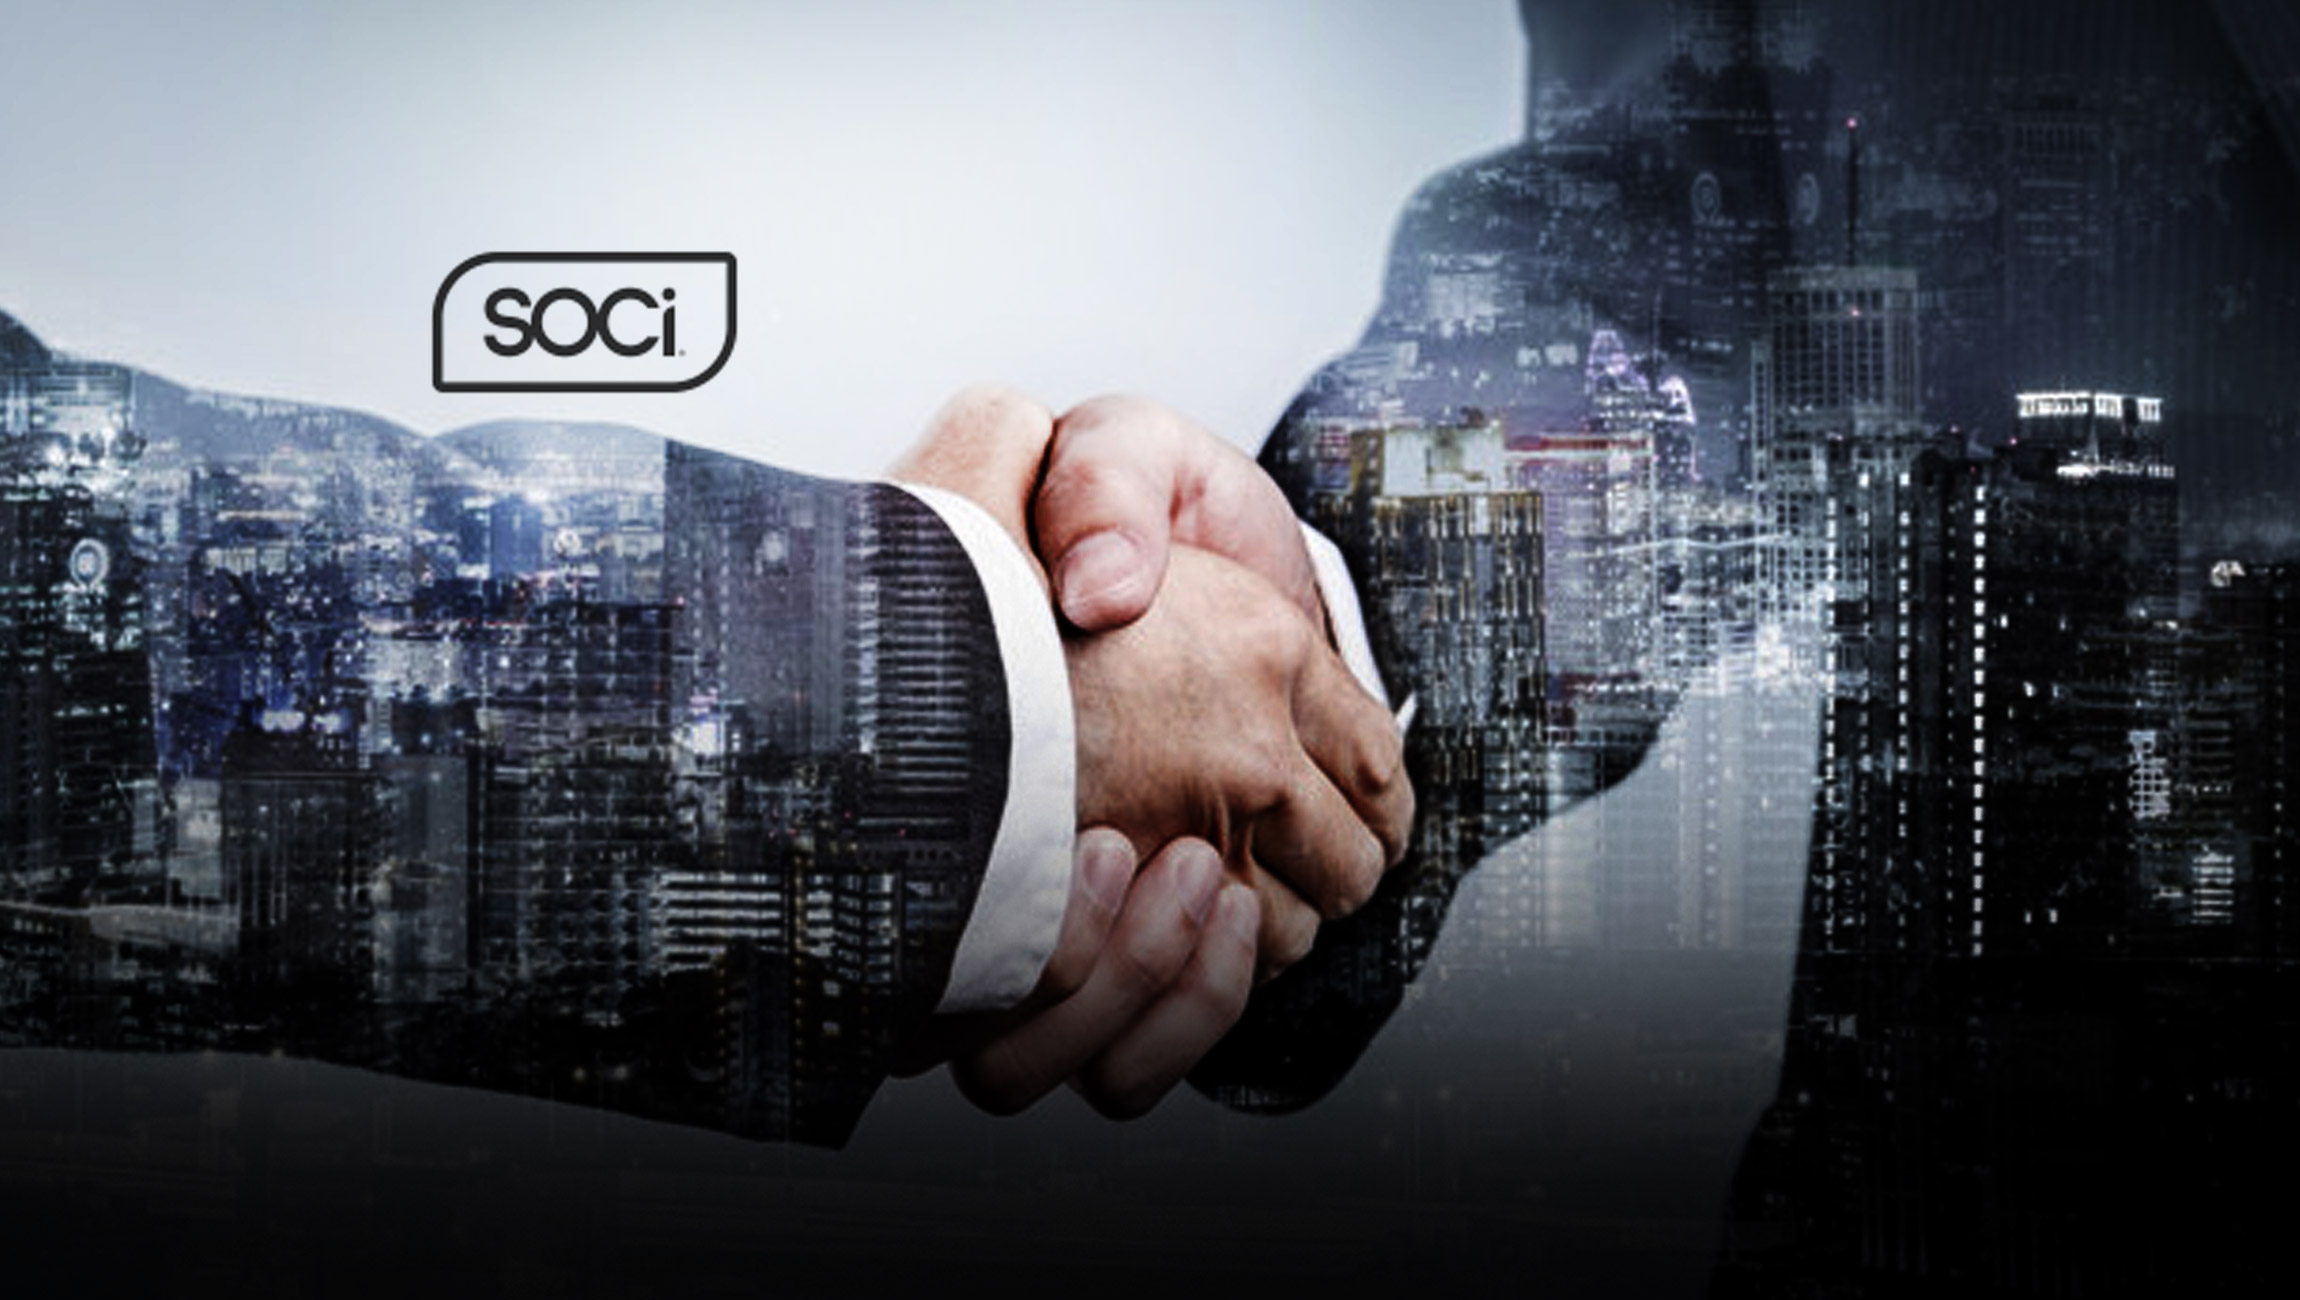 MomentFeed Founder Joins SOCi as it Continues Momentous Growth